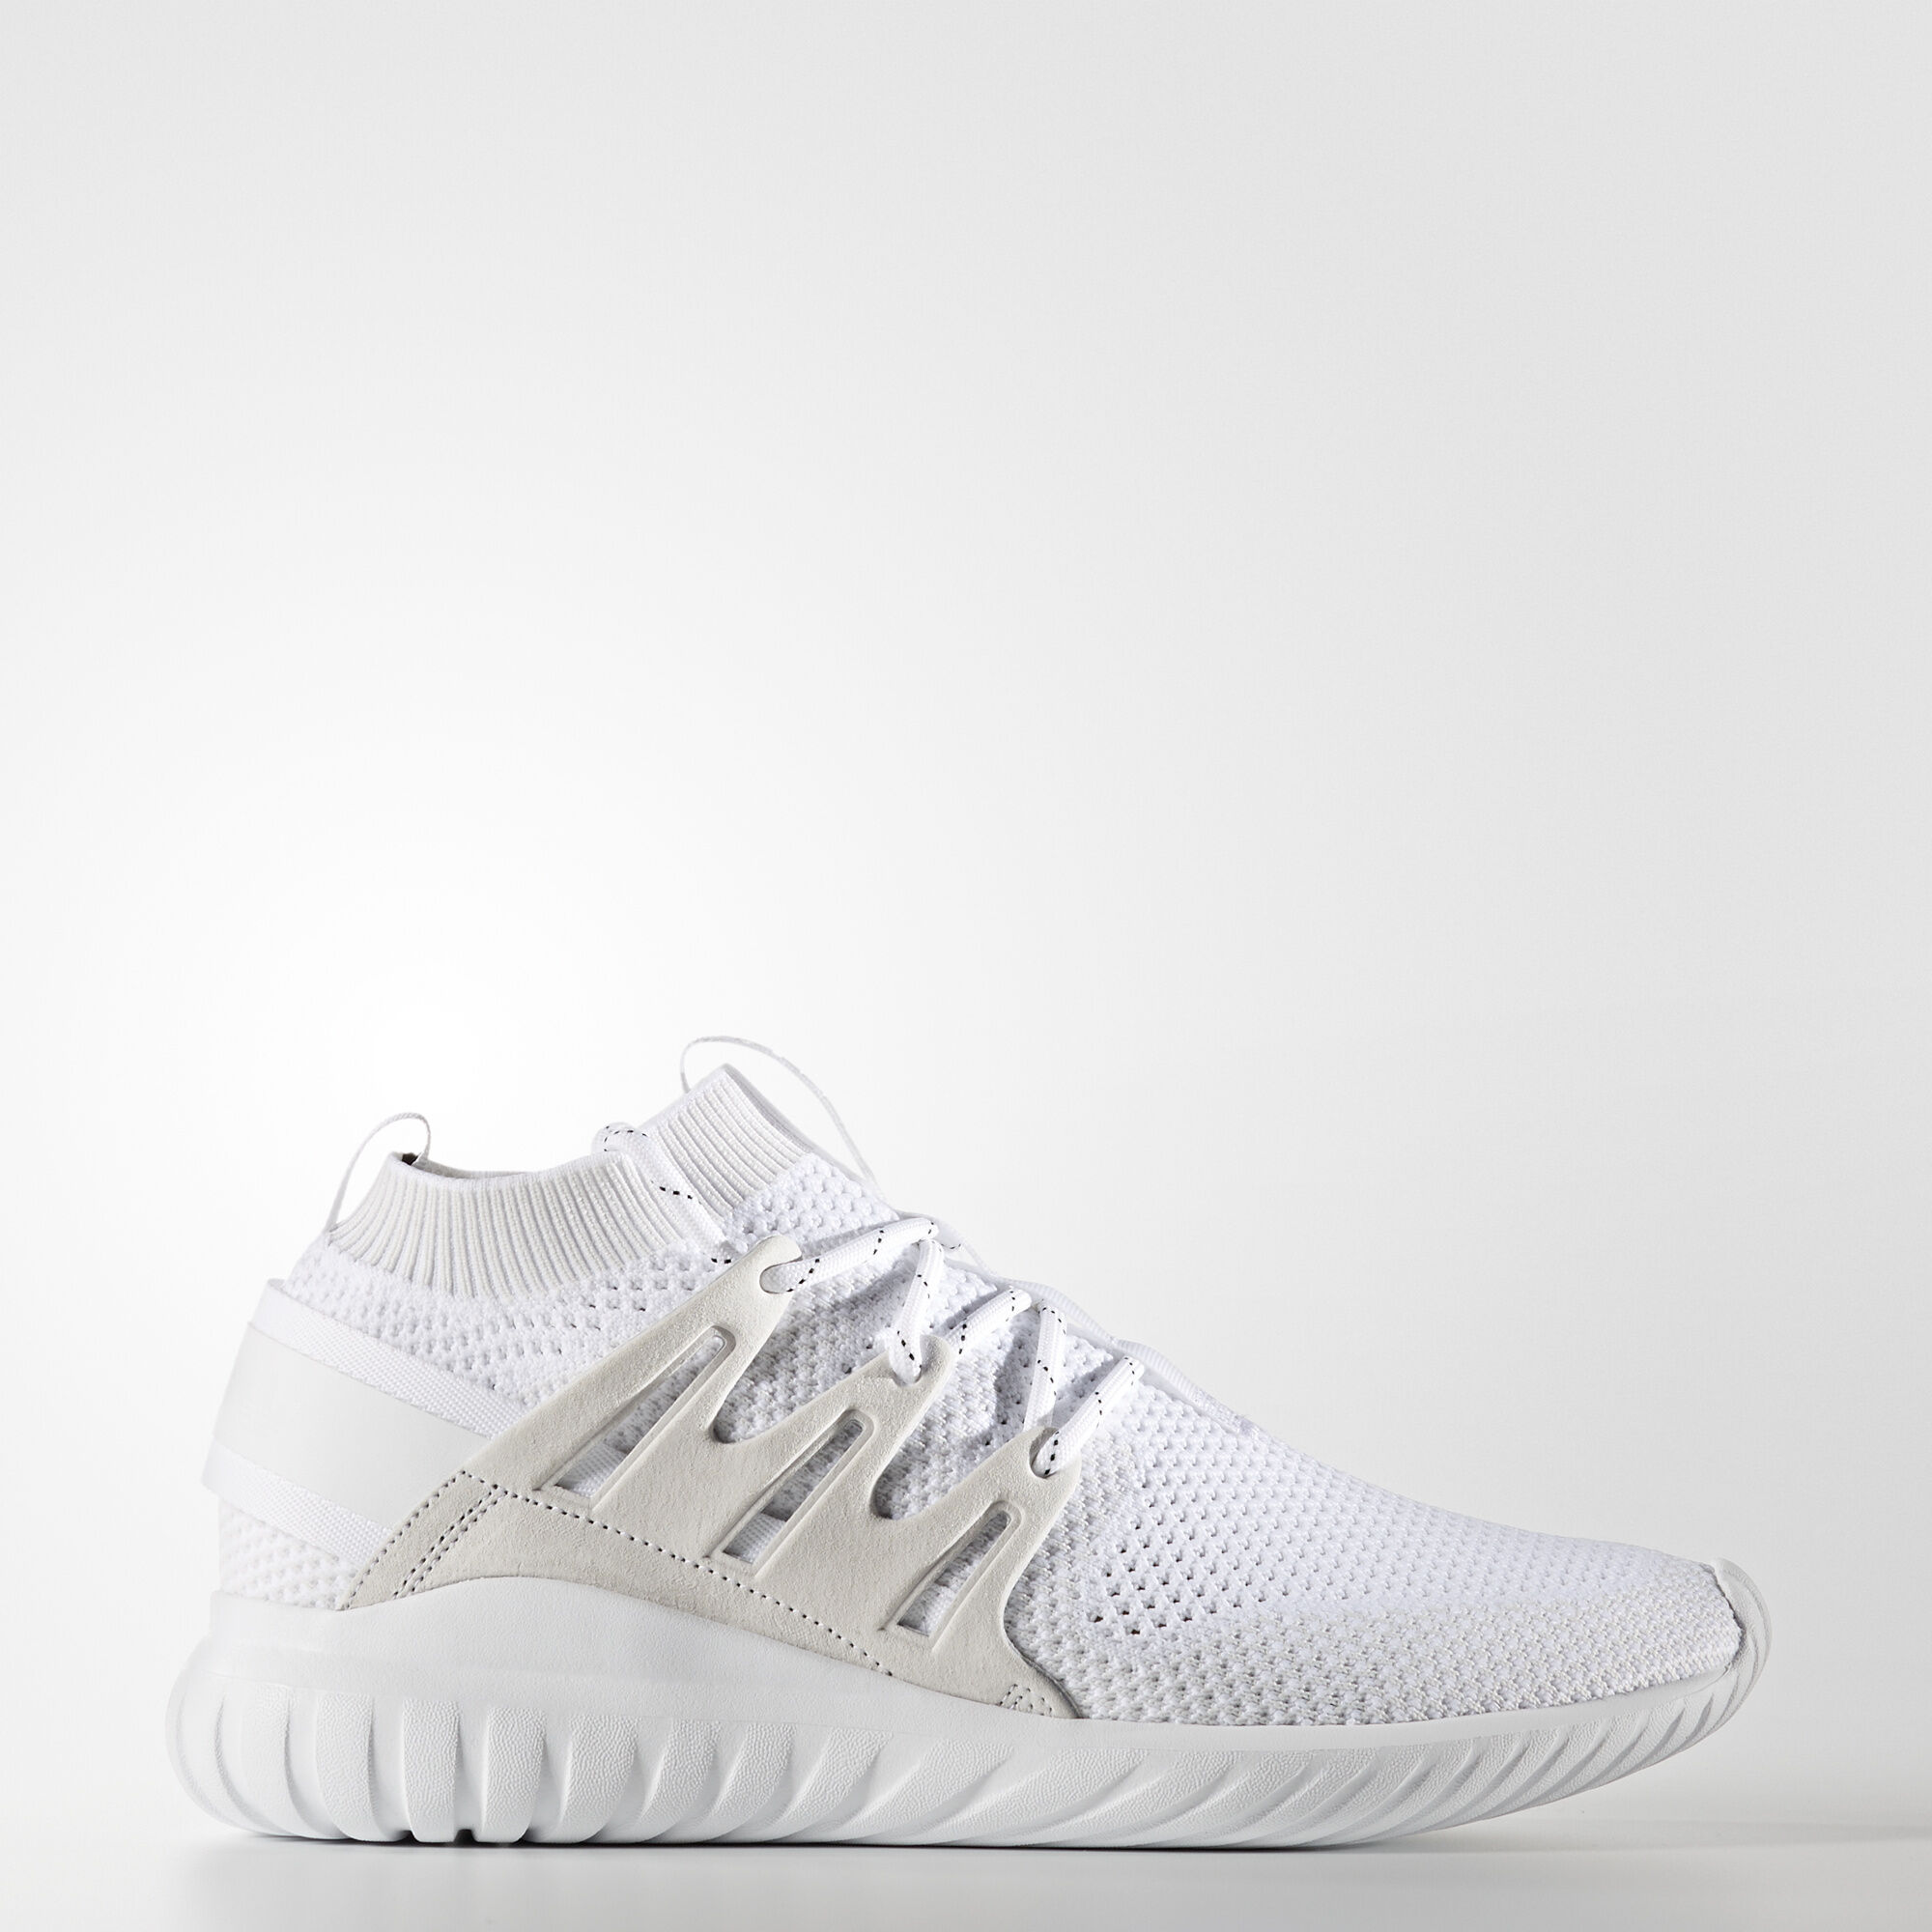 Adidas Originals Tubular Invader Strap 'Clear Brown / Chalk White' in